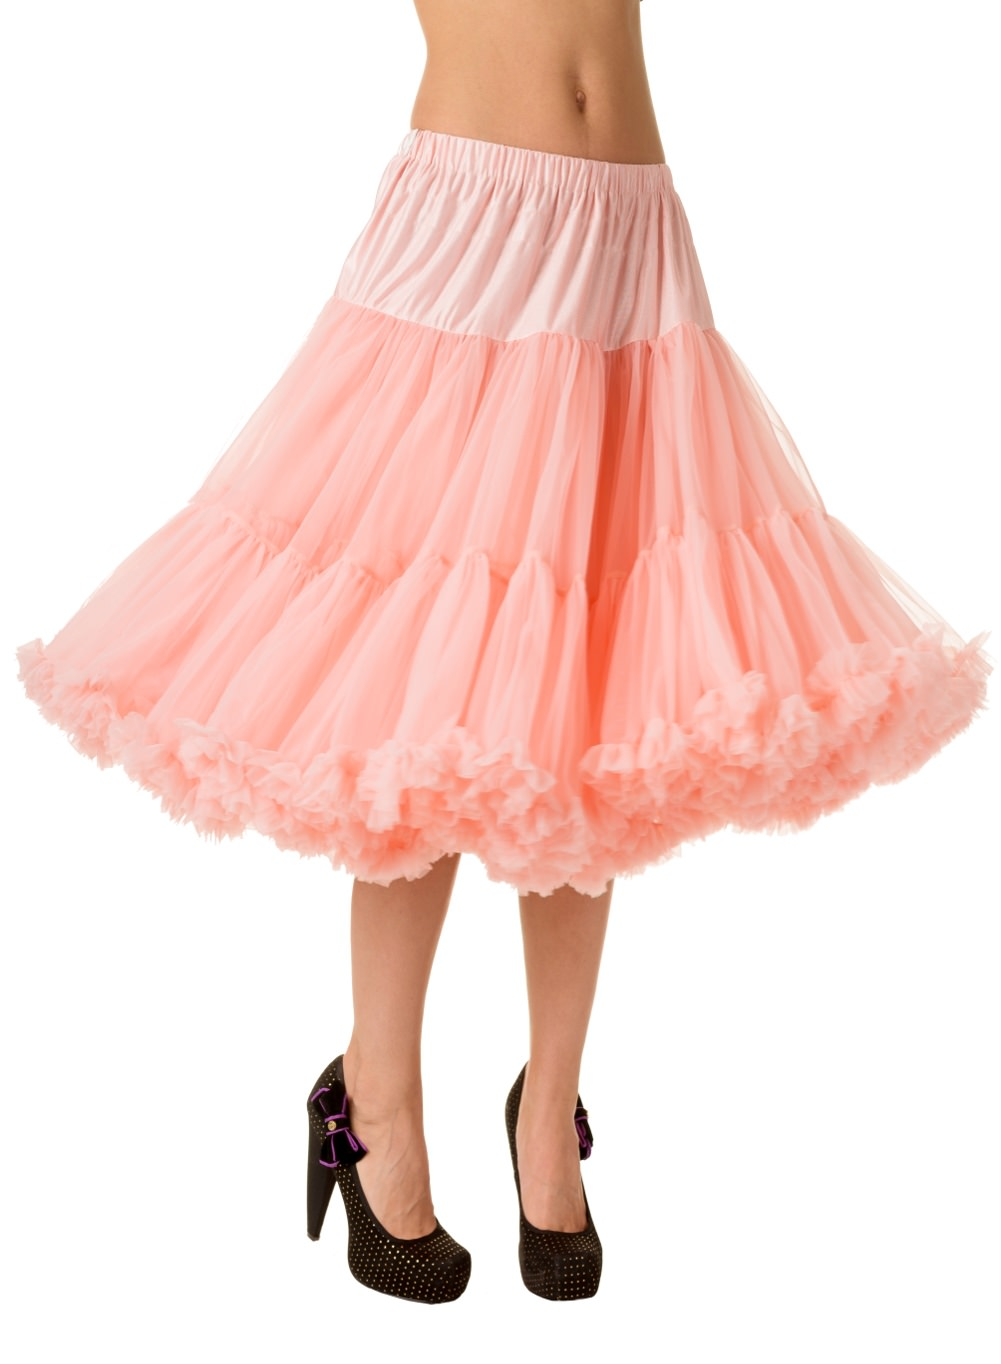 Banned Retro 50s Lizzy Lifeform Pink Petticoat